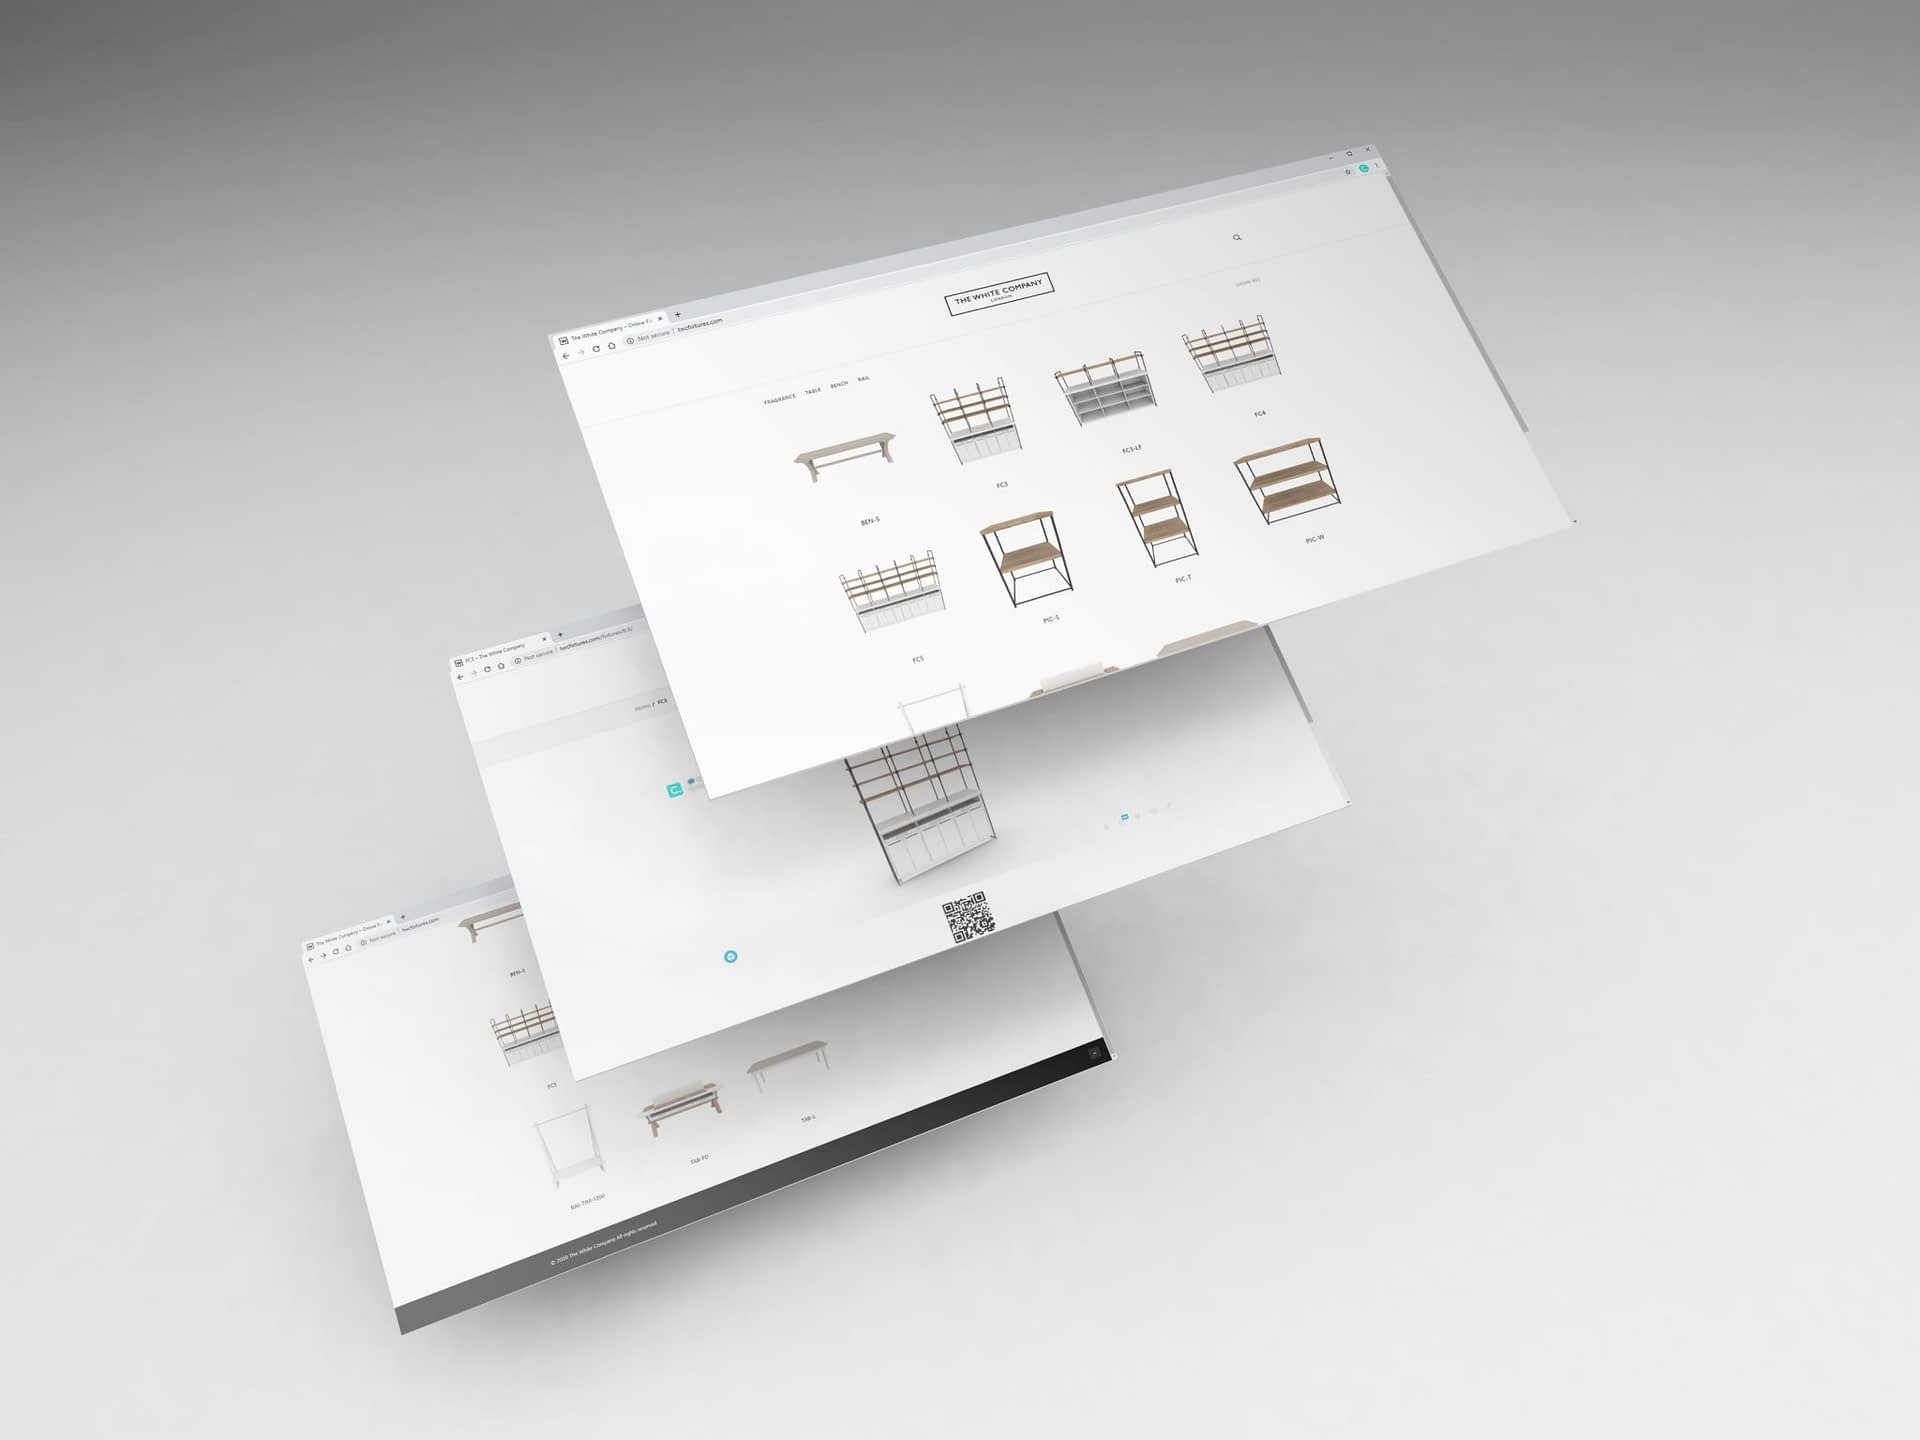 3D Fixture Library